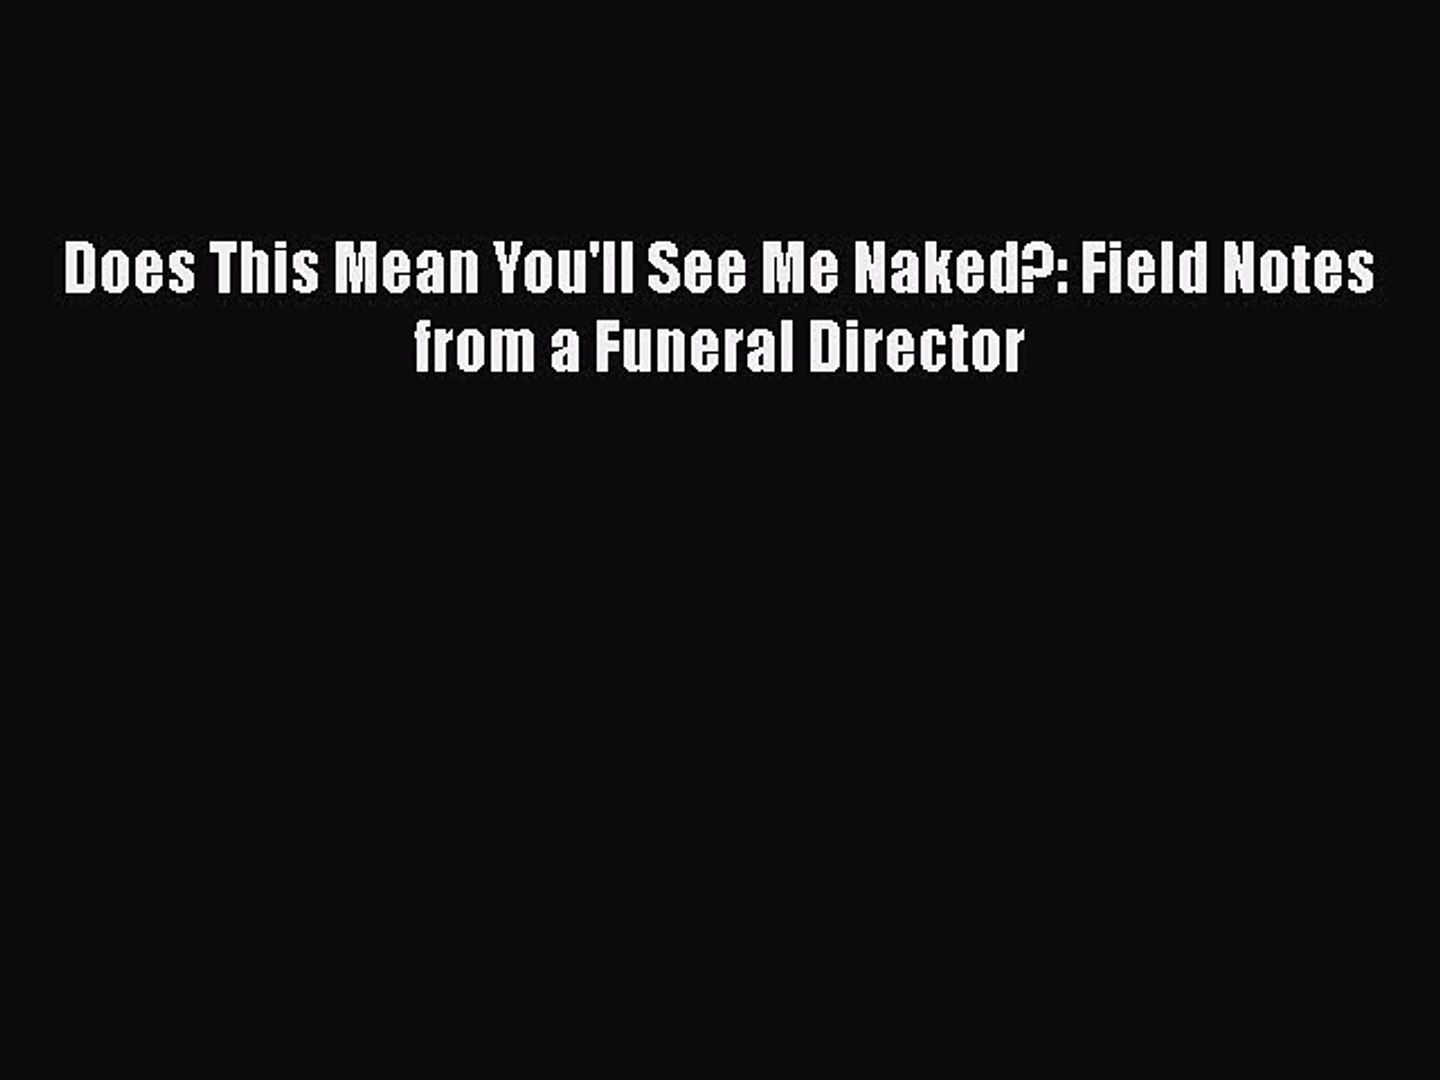 Does This Mean Youll See Me Naked?: Field Notes from a Funeral Director